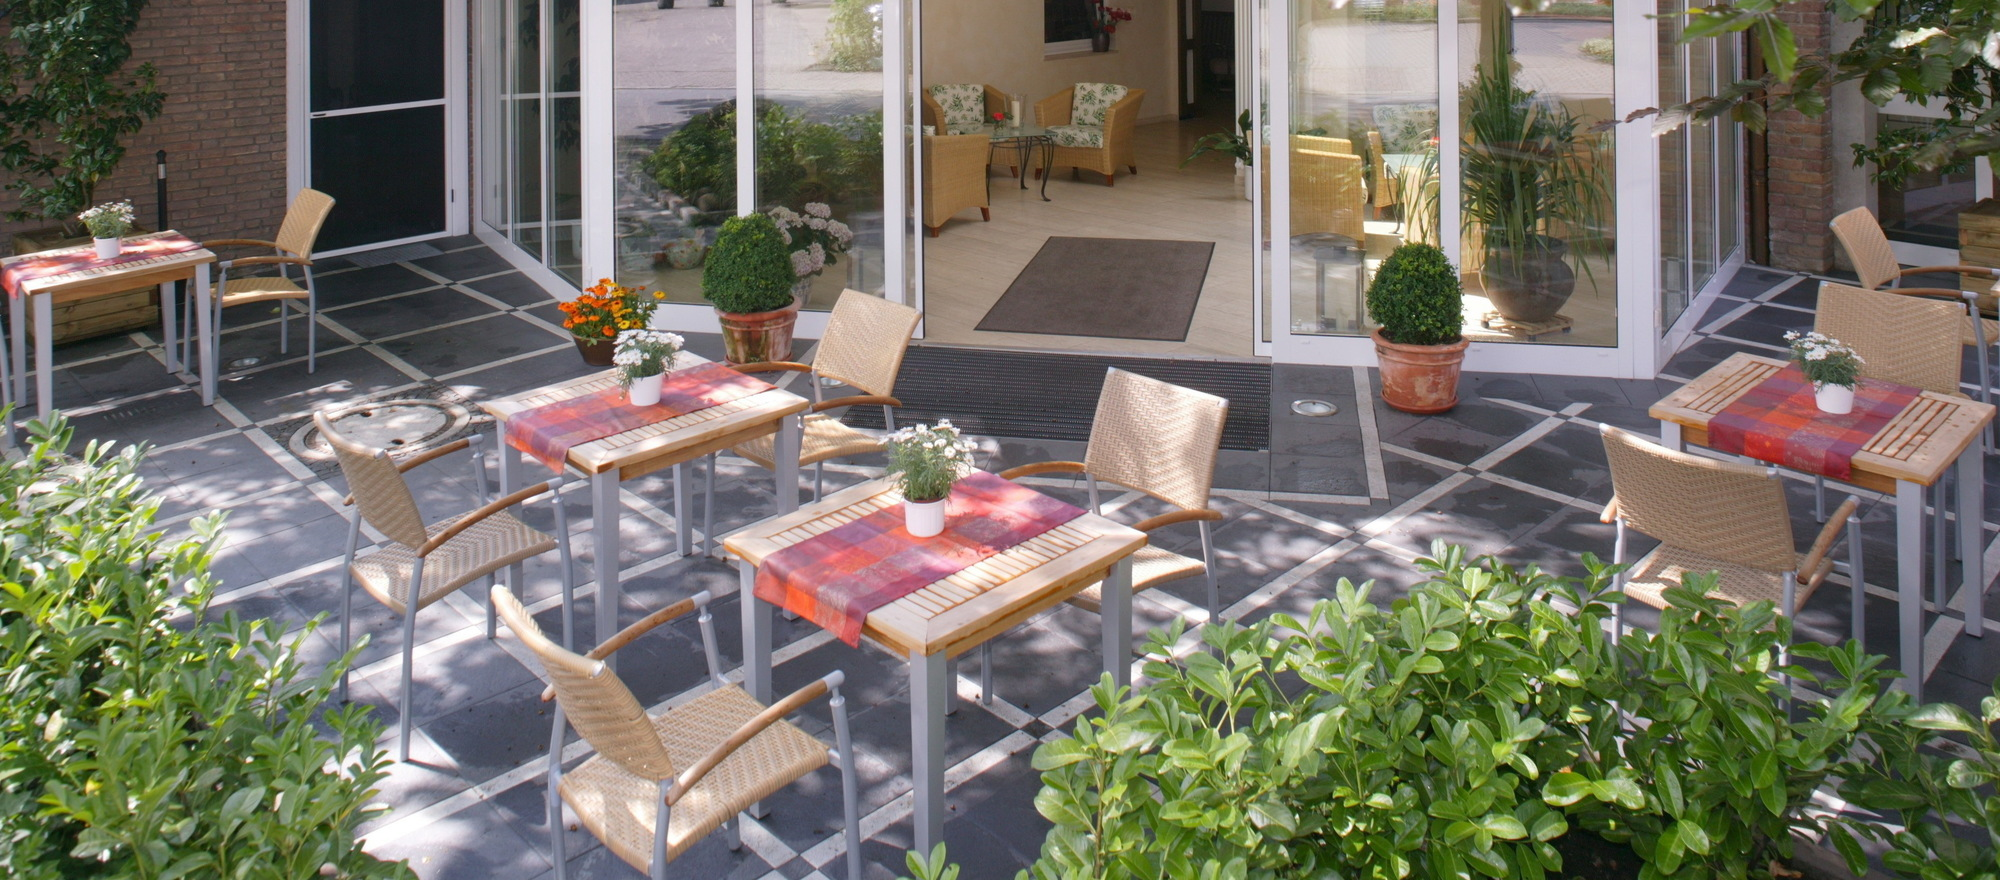 When the weather is nice, you have the option to sit outside on our big patio in the 3-star-superior hotel Ringhotel Paulsen in Zeven